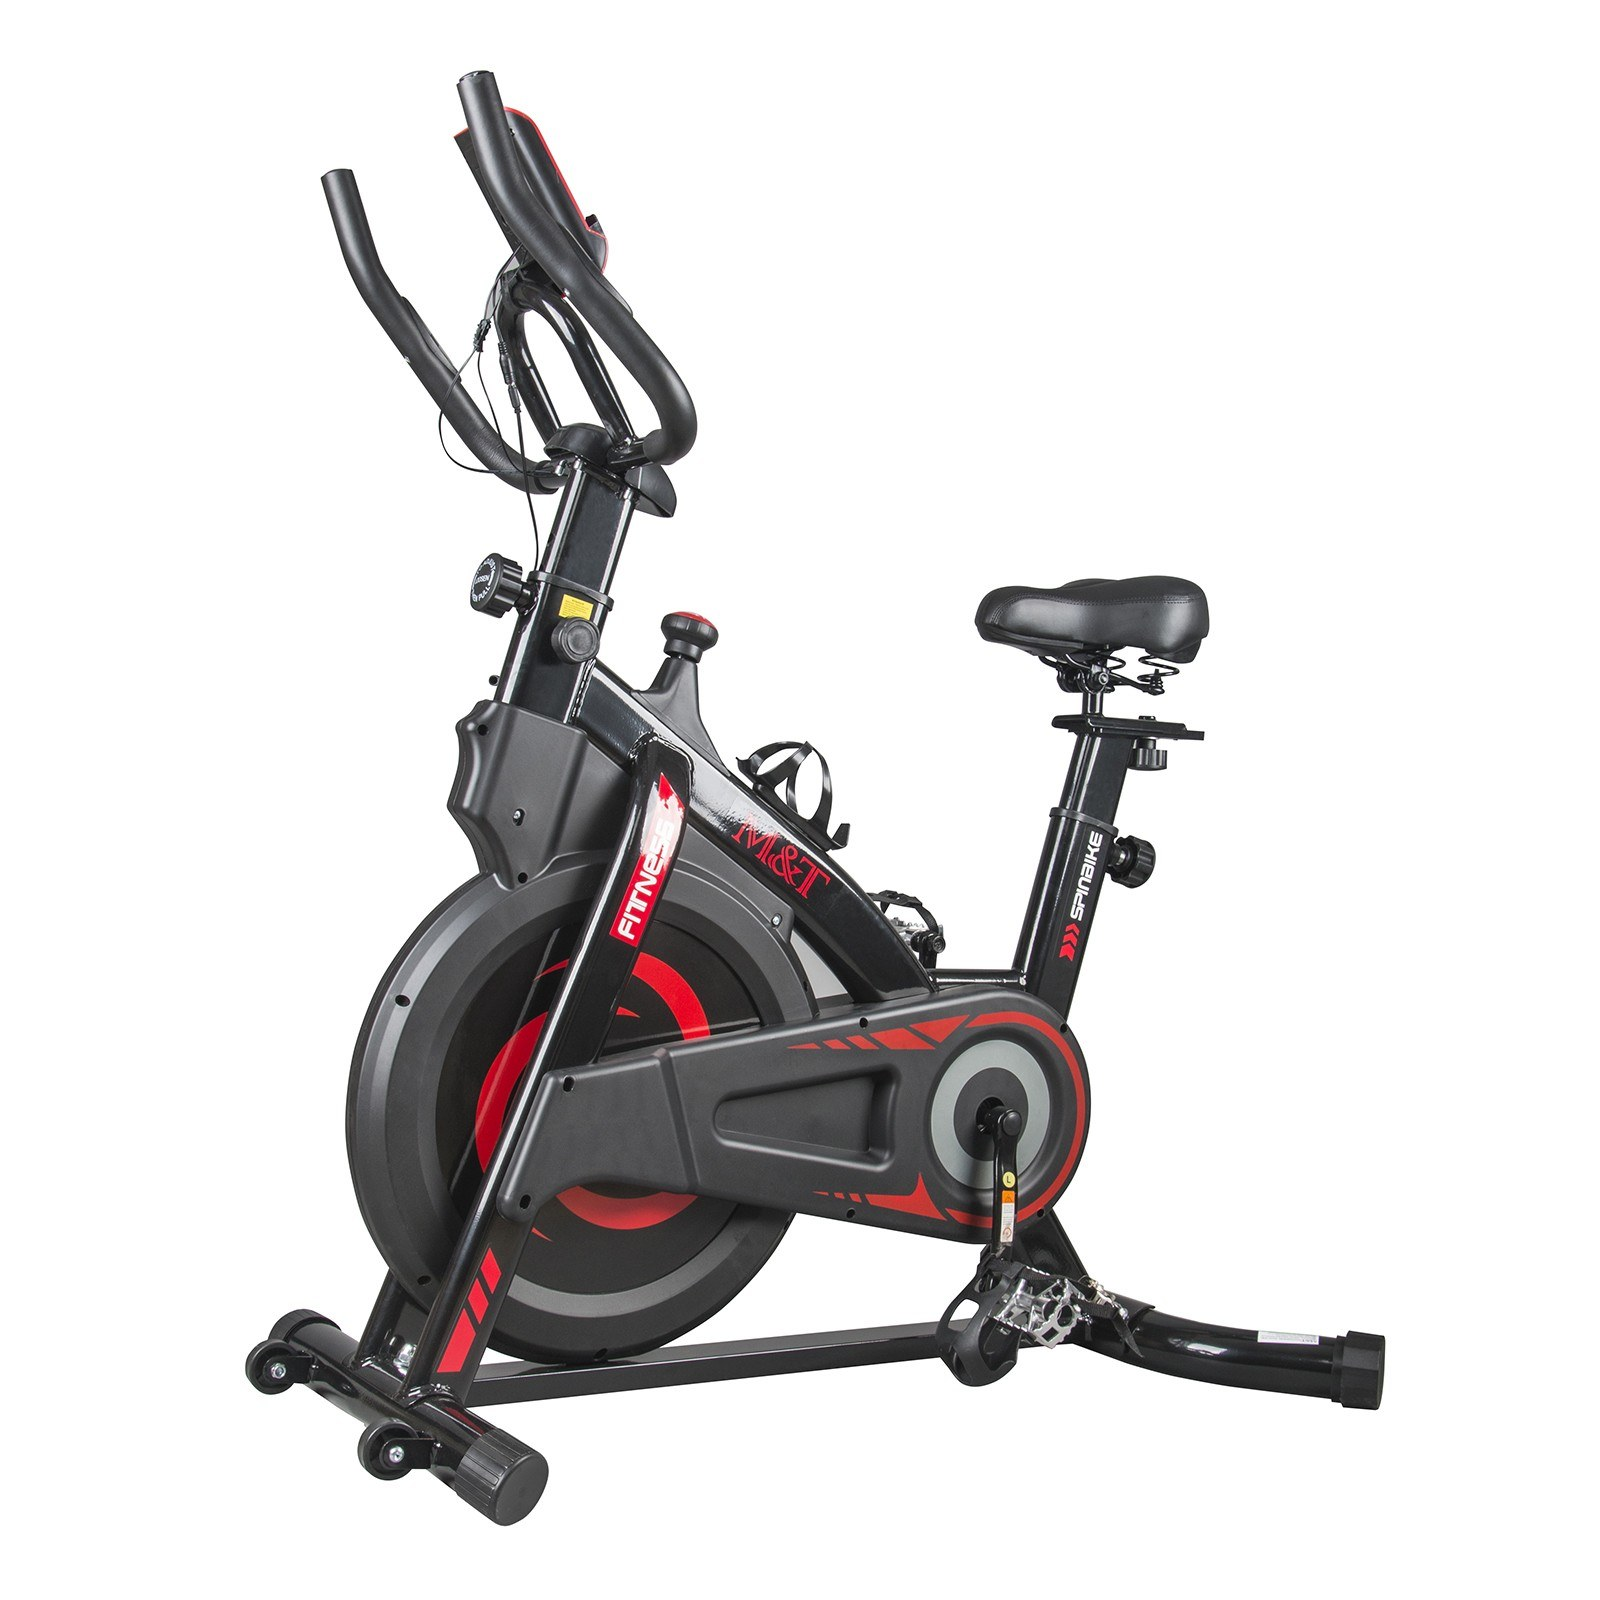 Cafago - 39% OFF M&T YS-7020 Indoor Cycling Stationary Exercise Bike with Resistance LCD Display 100kg Load Capacity,free shipping+$219.29